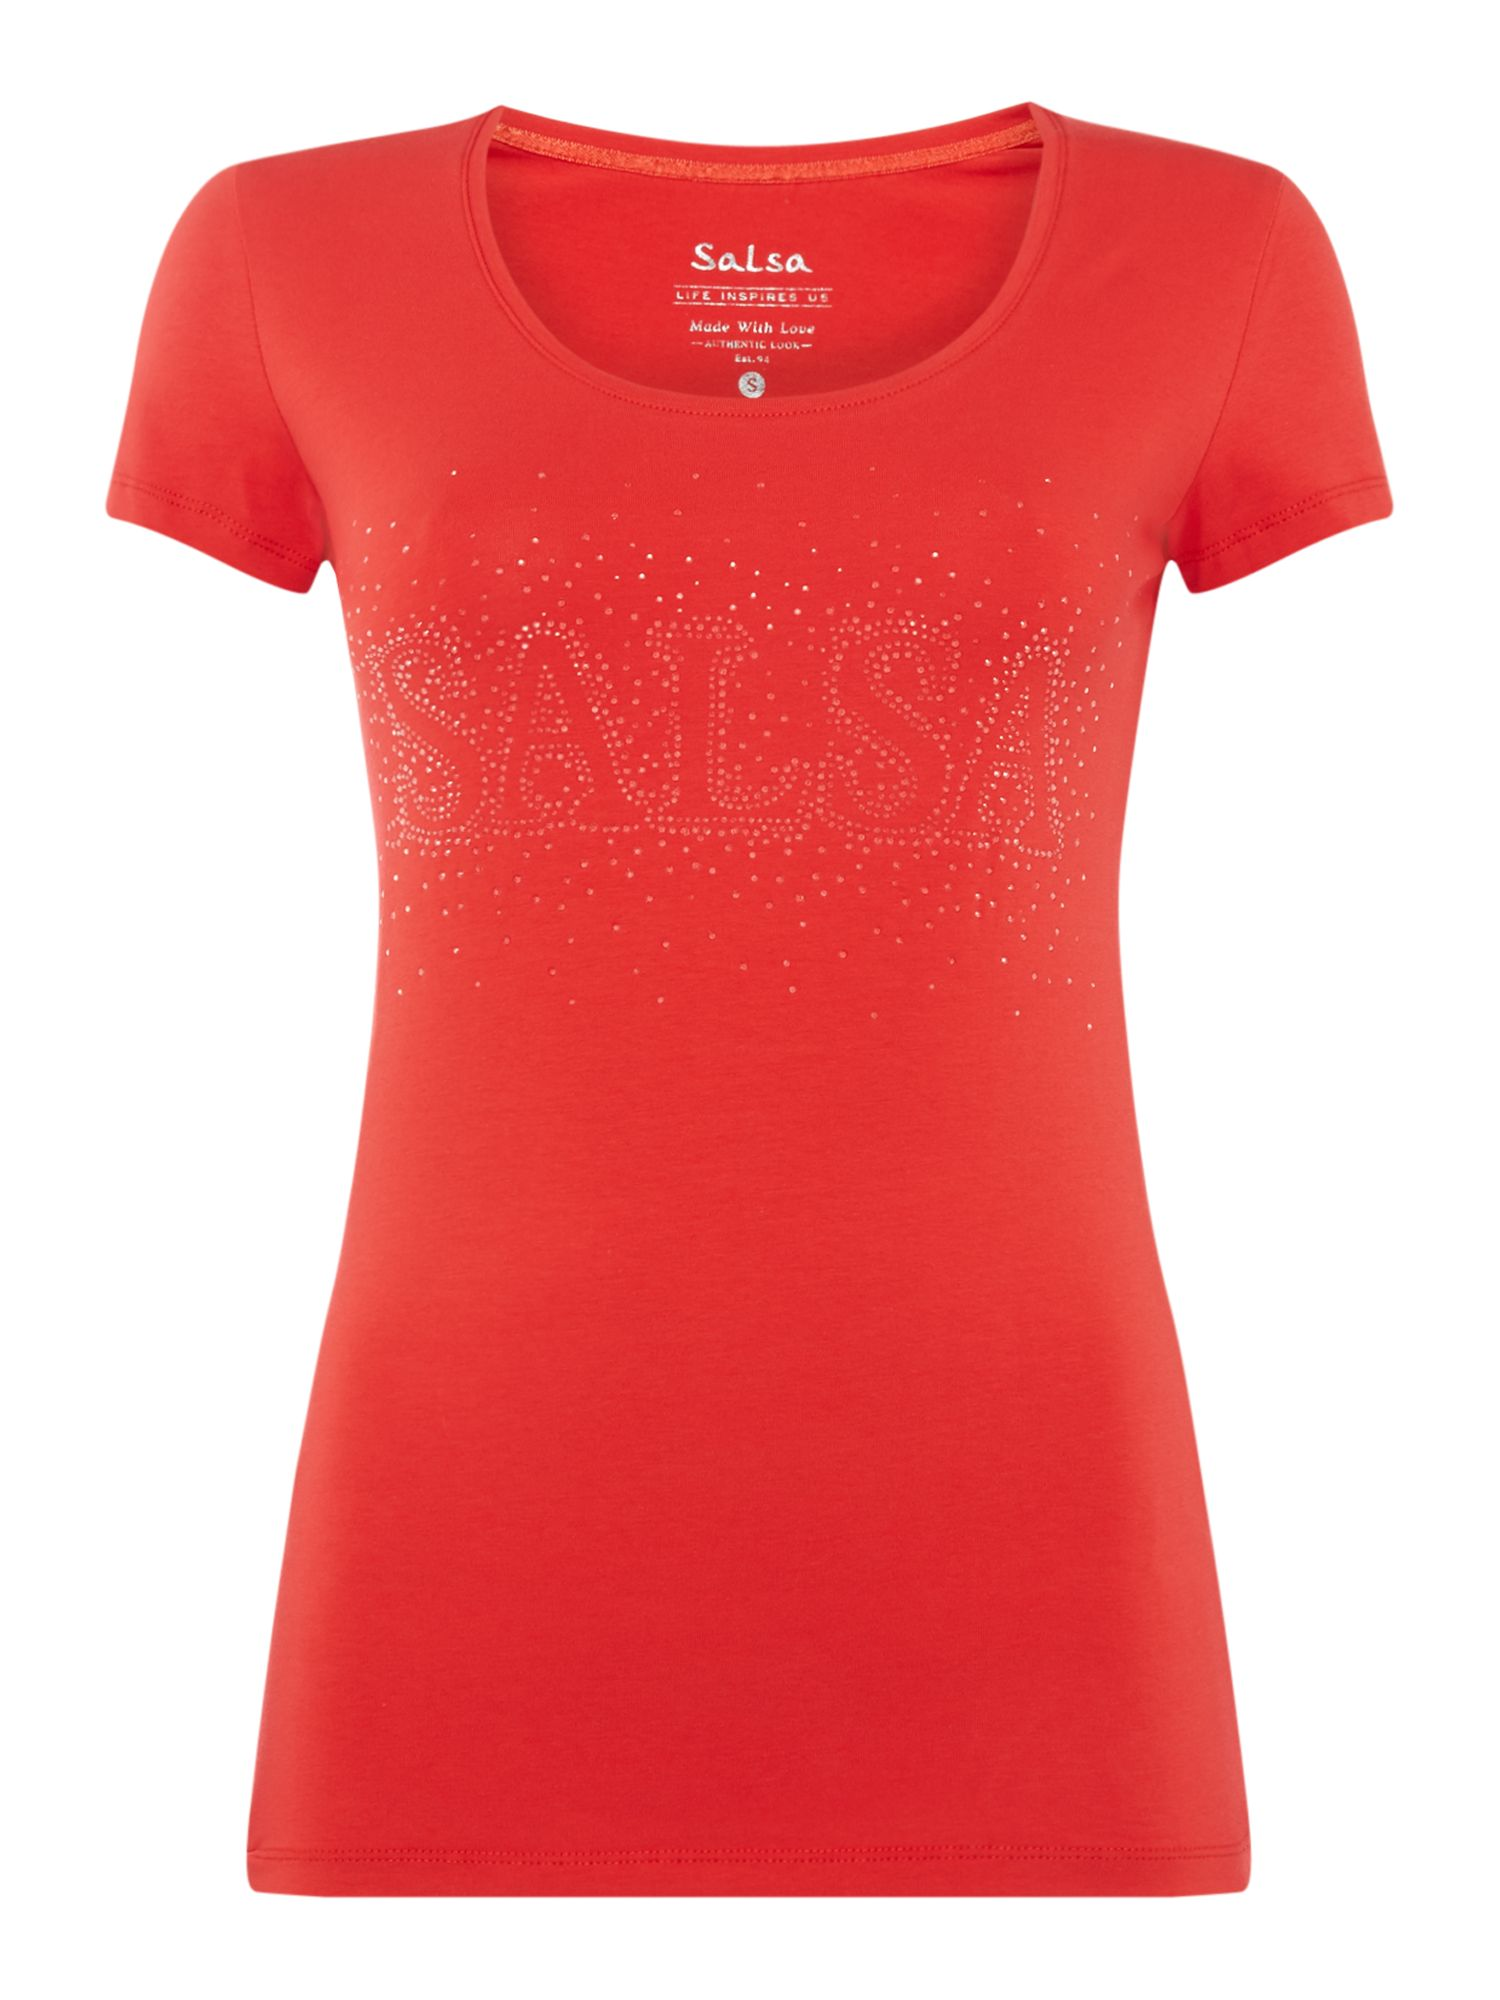 Salsa Short Sleeve Crew Neck Top With Logo, Red